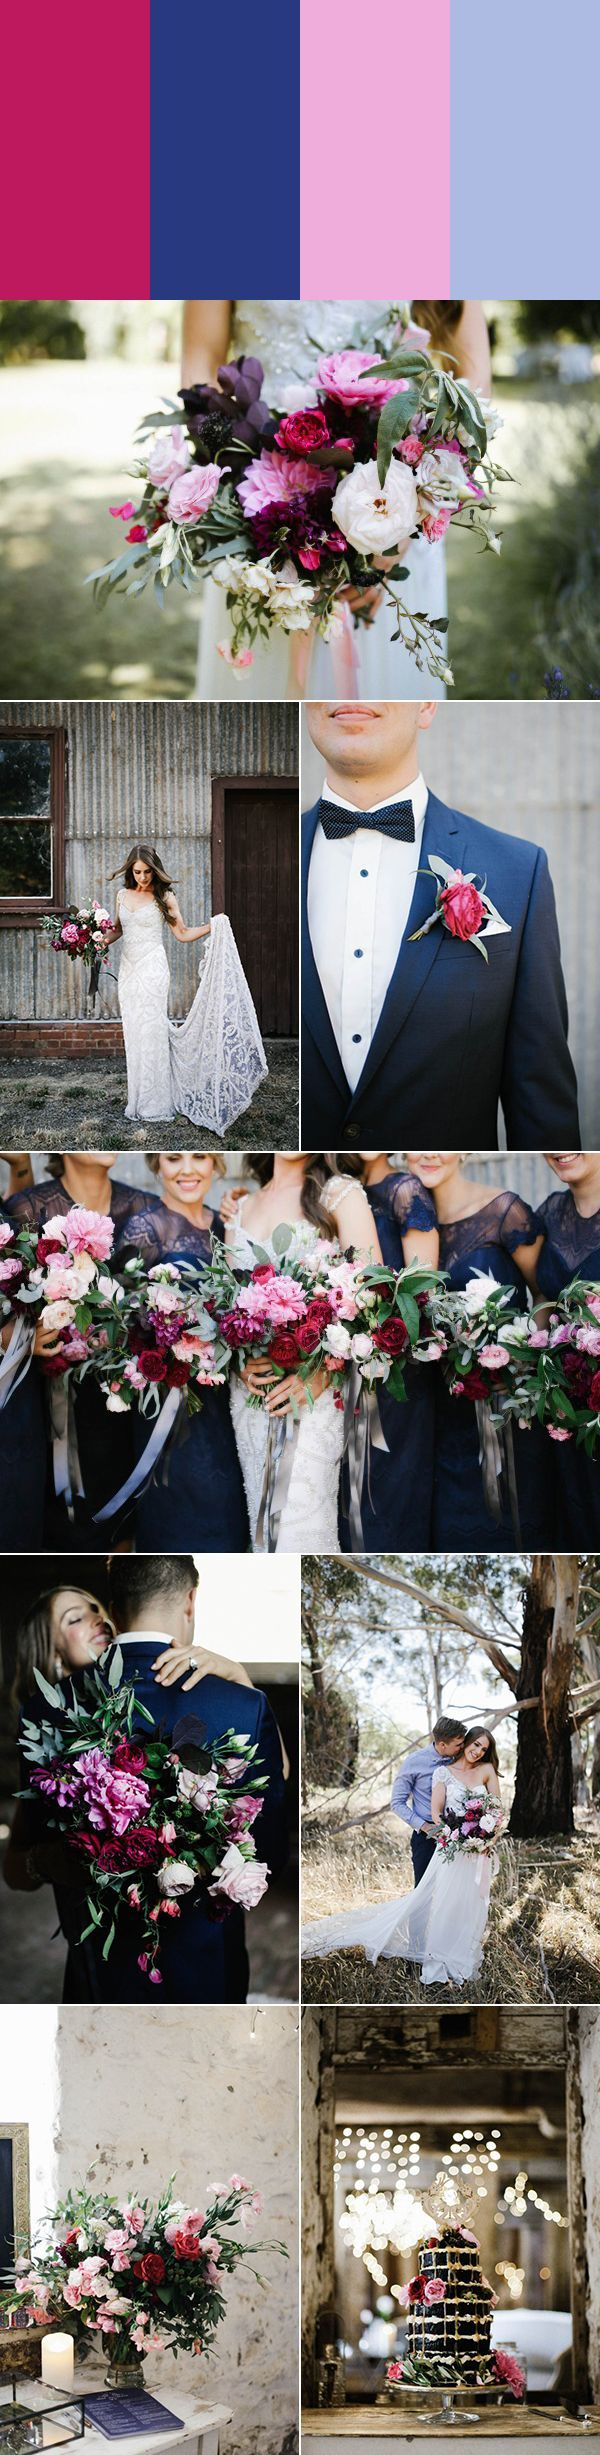 cranberry, navy, peony, and baby blue wedding style   photos by Brown Paper Parcel